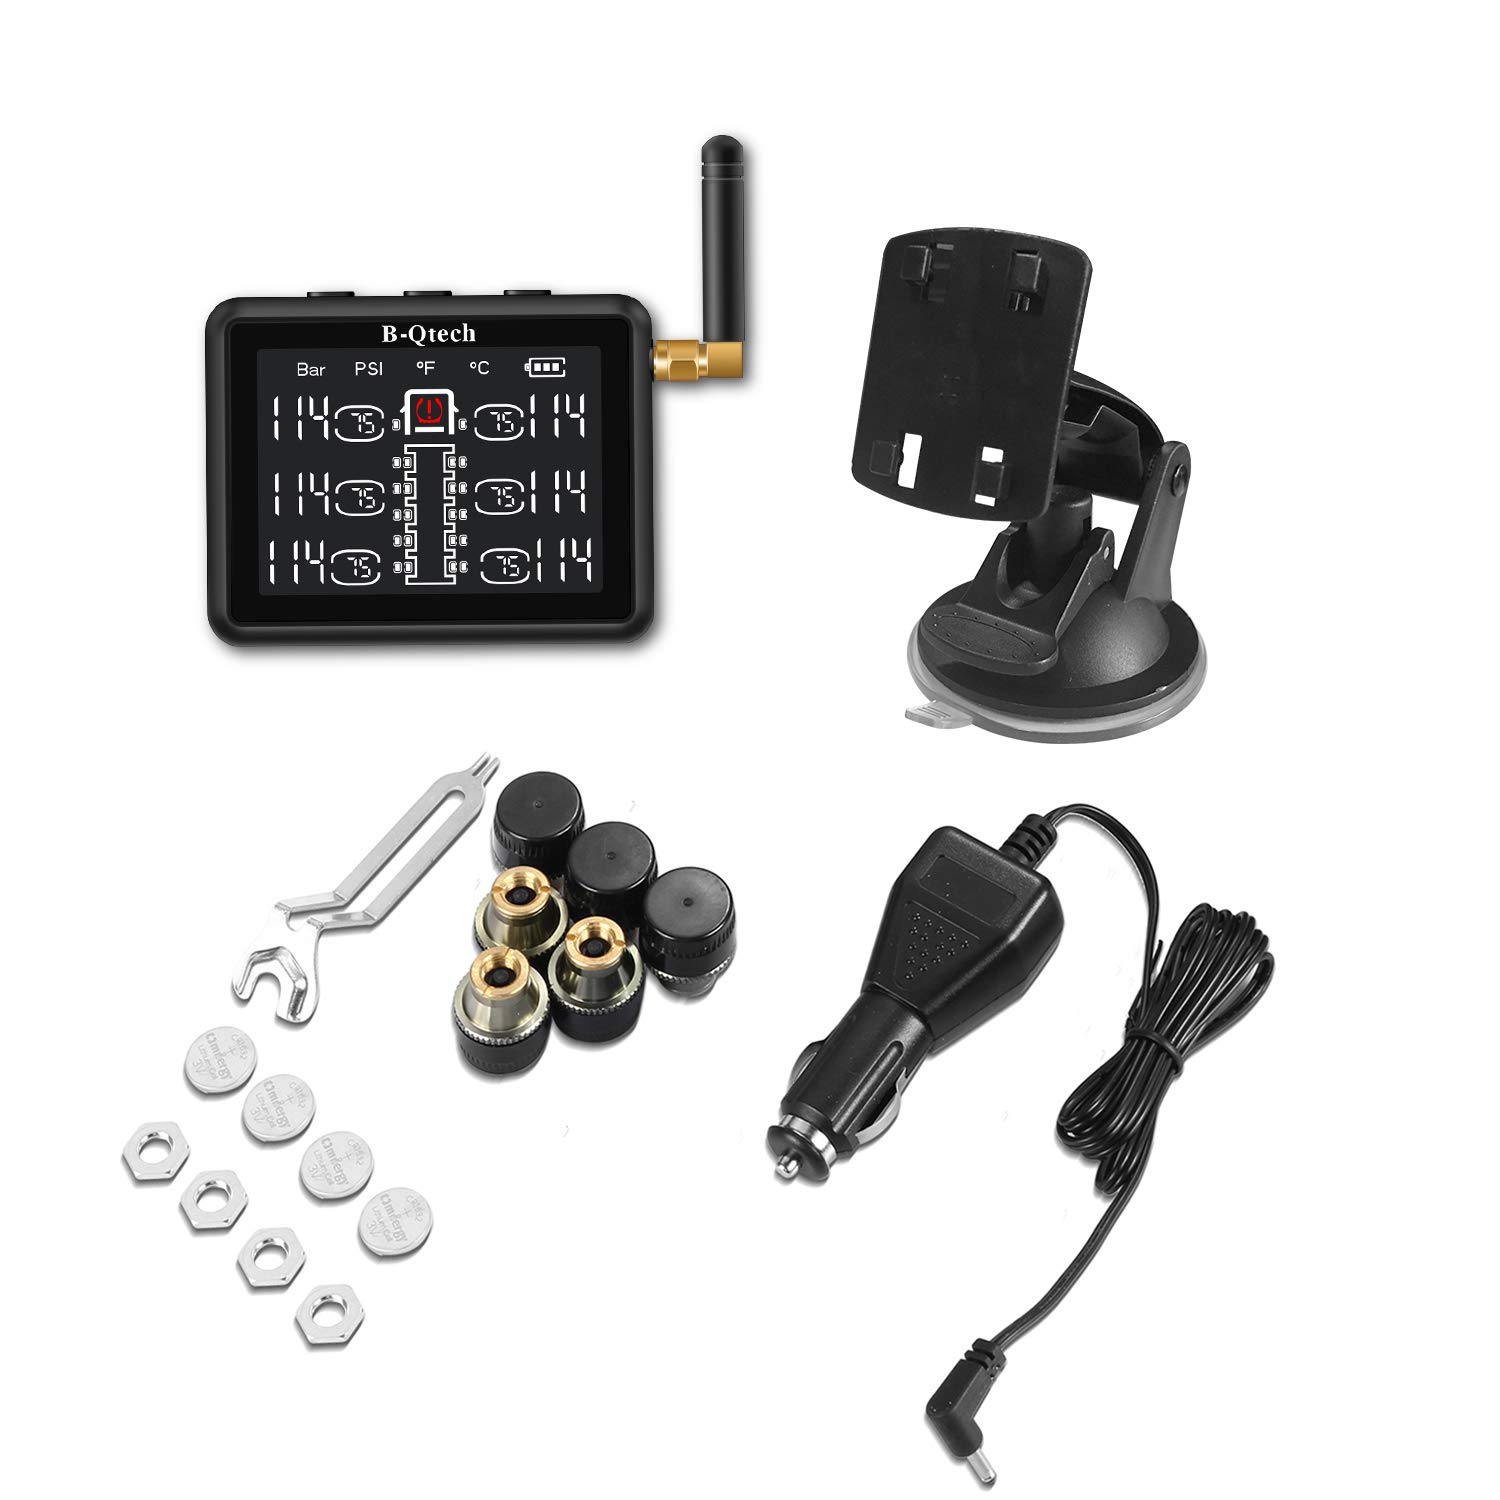 B-Qtech 3.15 inch Wireless RV Truck TPMS Tire Pressure Monitoring System with TPMS 6 Sensors for RVs MotorHomes Truck Tow Trailers Motorcoaches Bus LCD Display Support Max 22 Tyres(0~232PSI) by B-Qtech (Image #8)